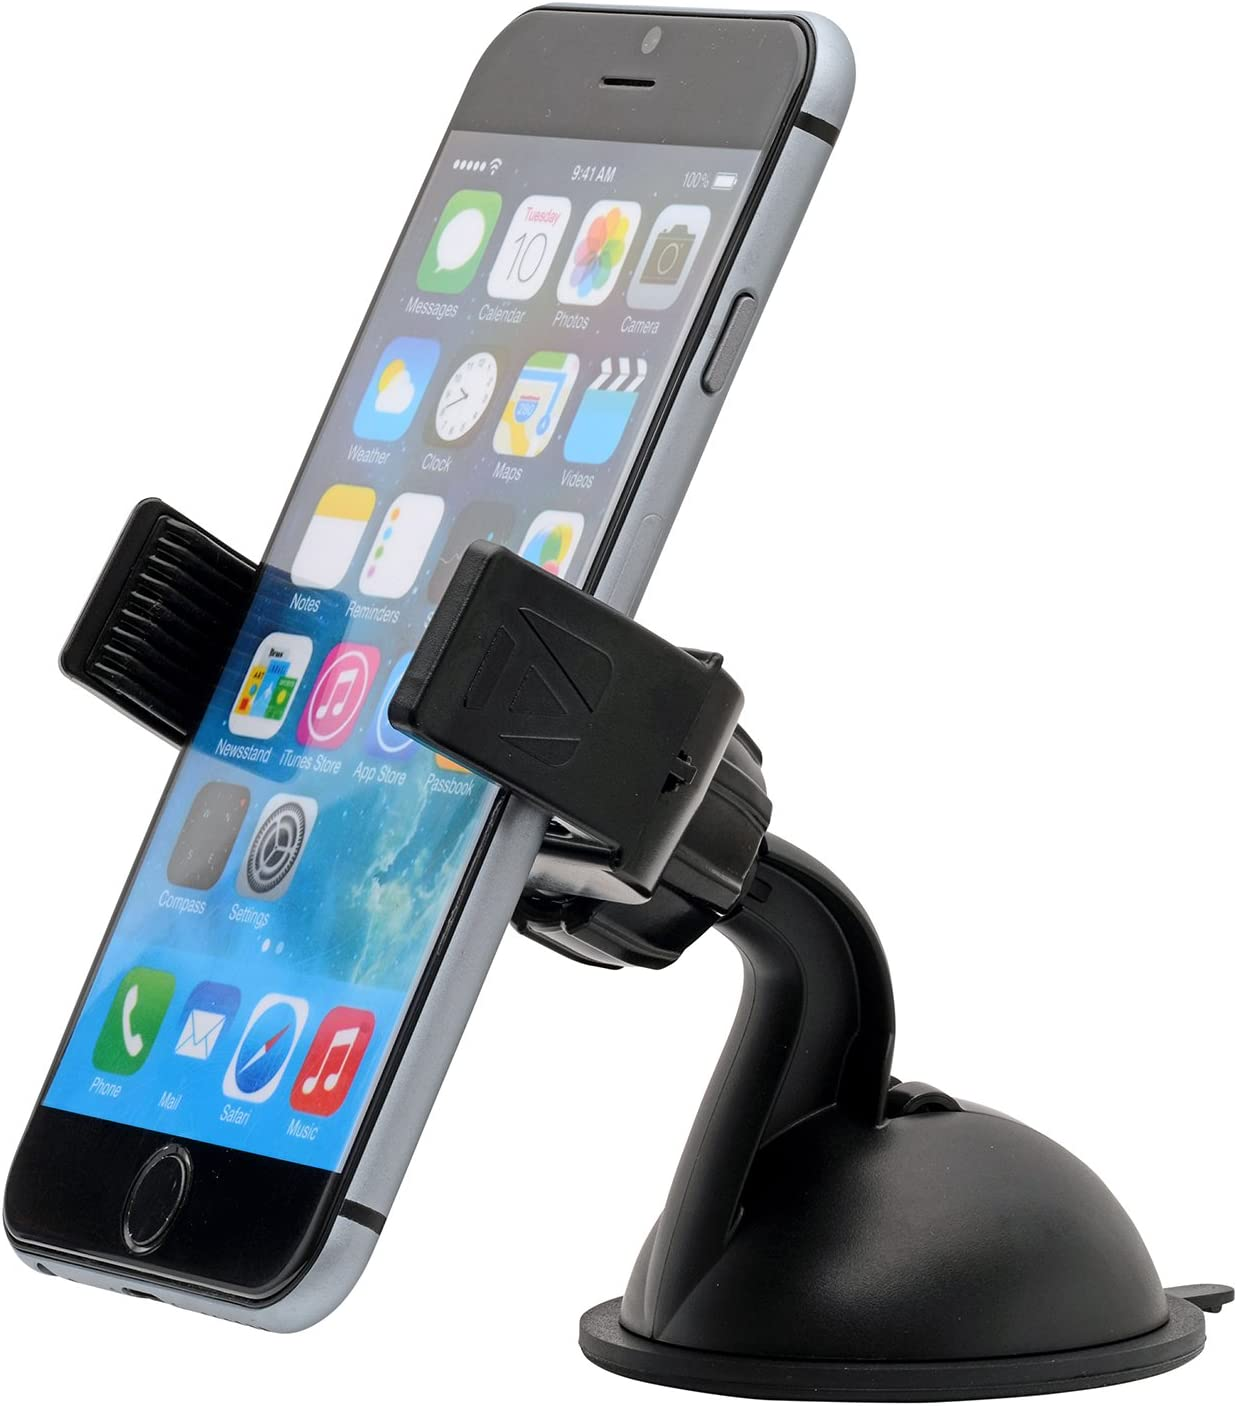 Aduro UNI-SPH01BK-CM U-Grip Plus Universal Dashboard/Windshield Car Mount for Smartphones and Multimedia Devices with 3.5 to 5.5-Inch Screen (Black)